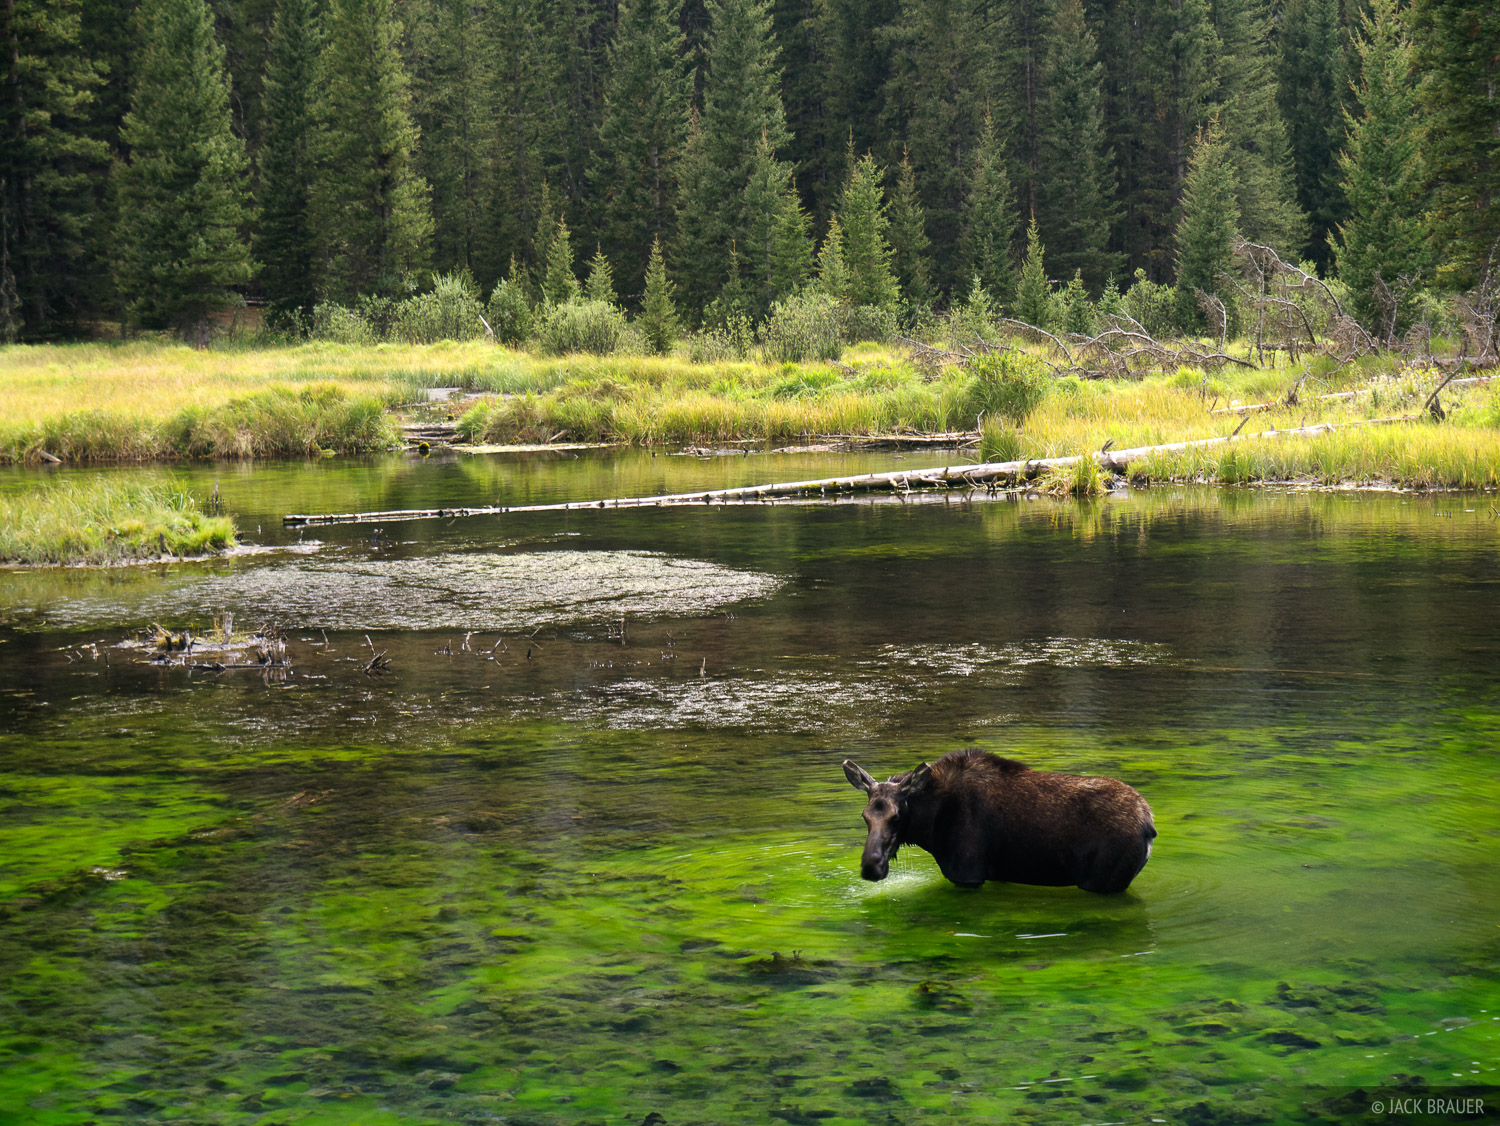 A moose wading in the beaver ponds of Elk Creek in the Weminuche Wilderness, eating the green algae in the water.